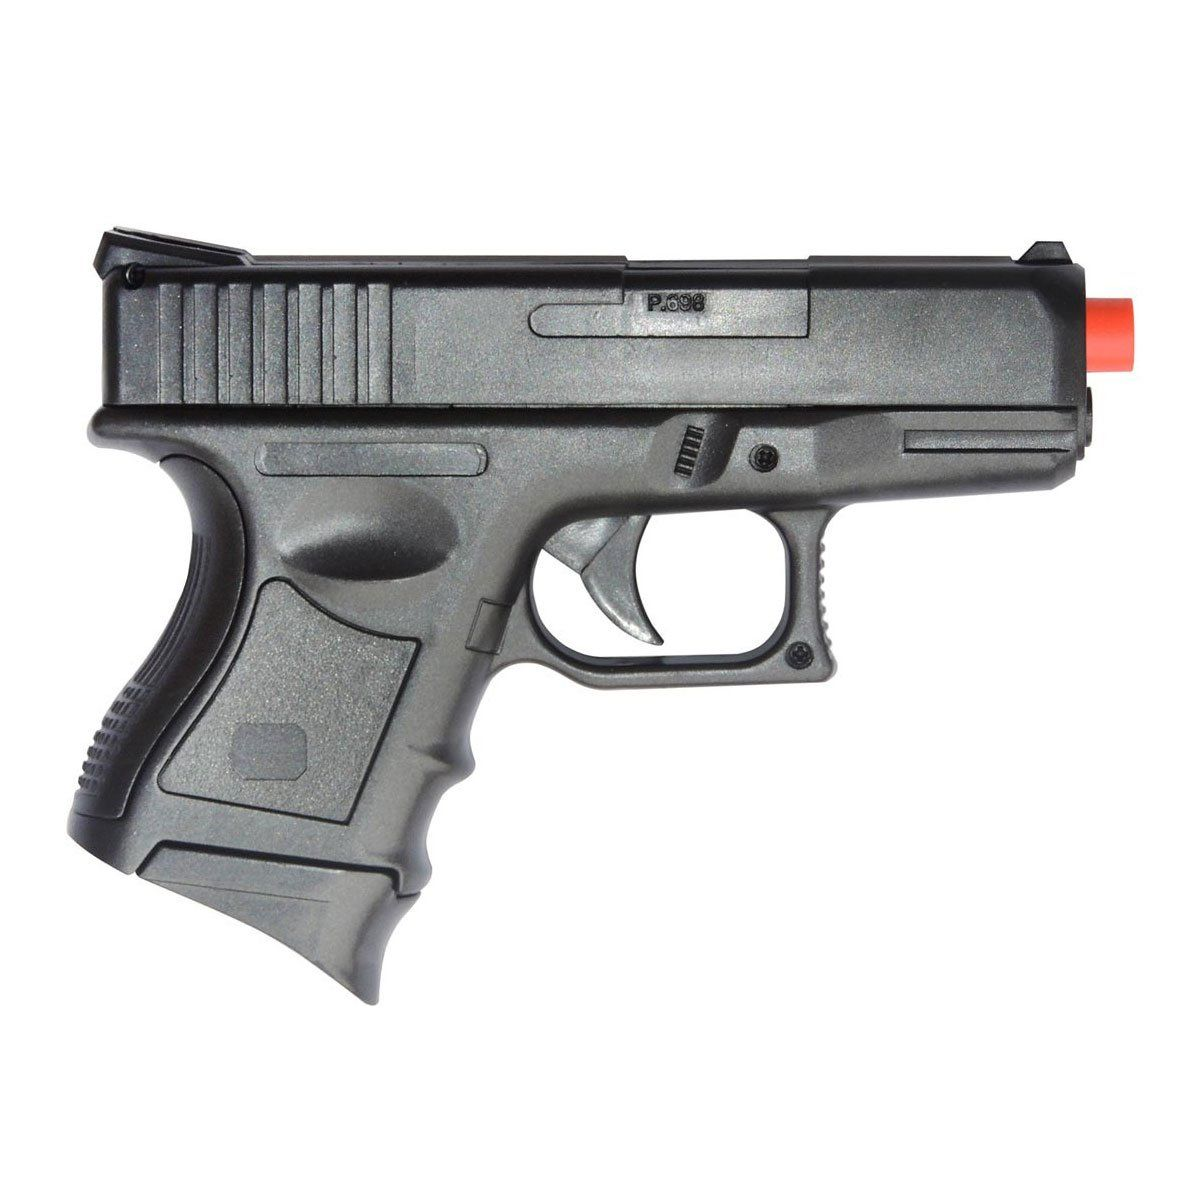 Pistola Airsoft Cyma P698 Spring Calibre 6mm